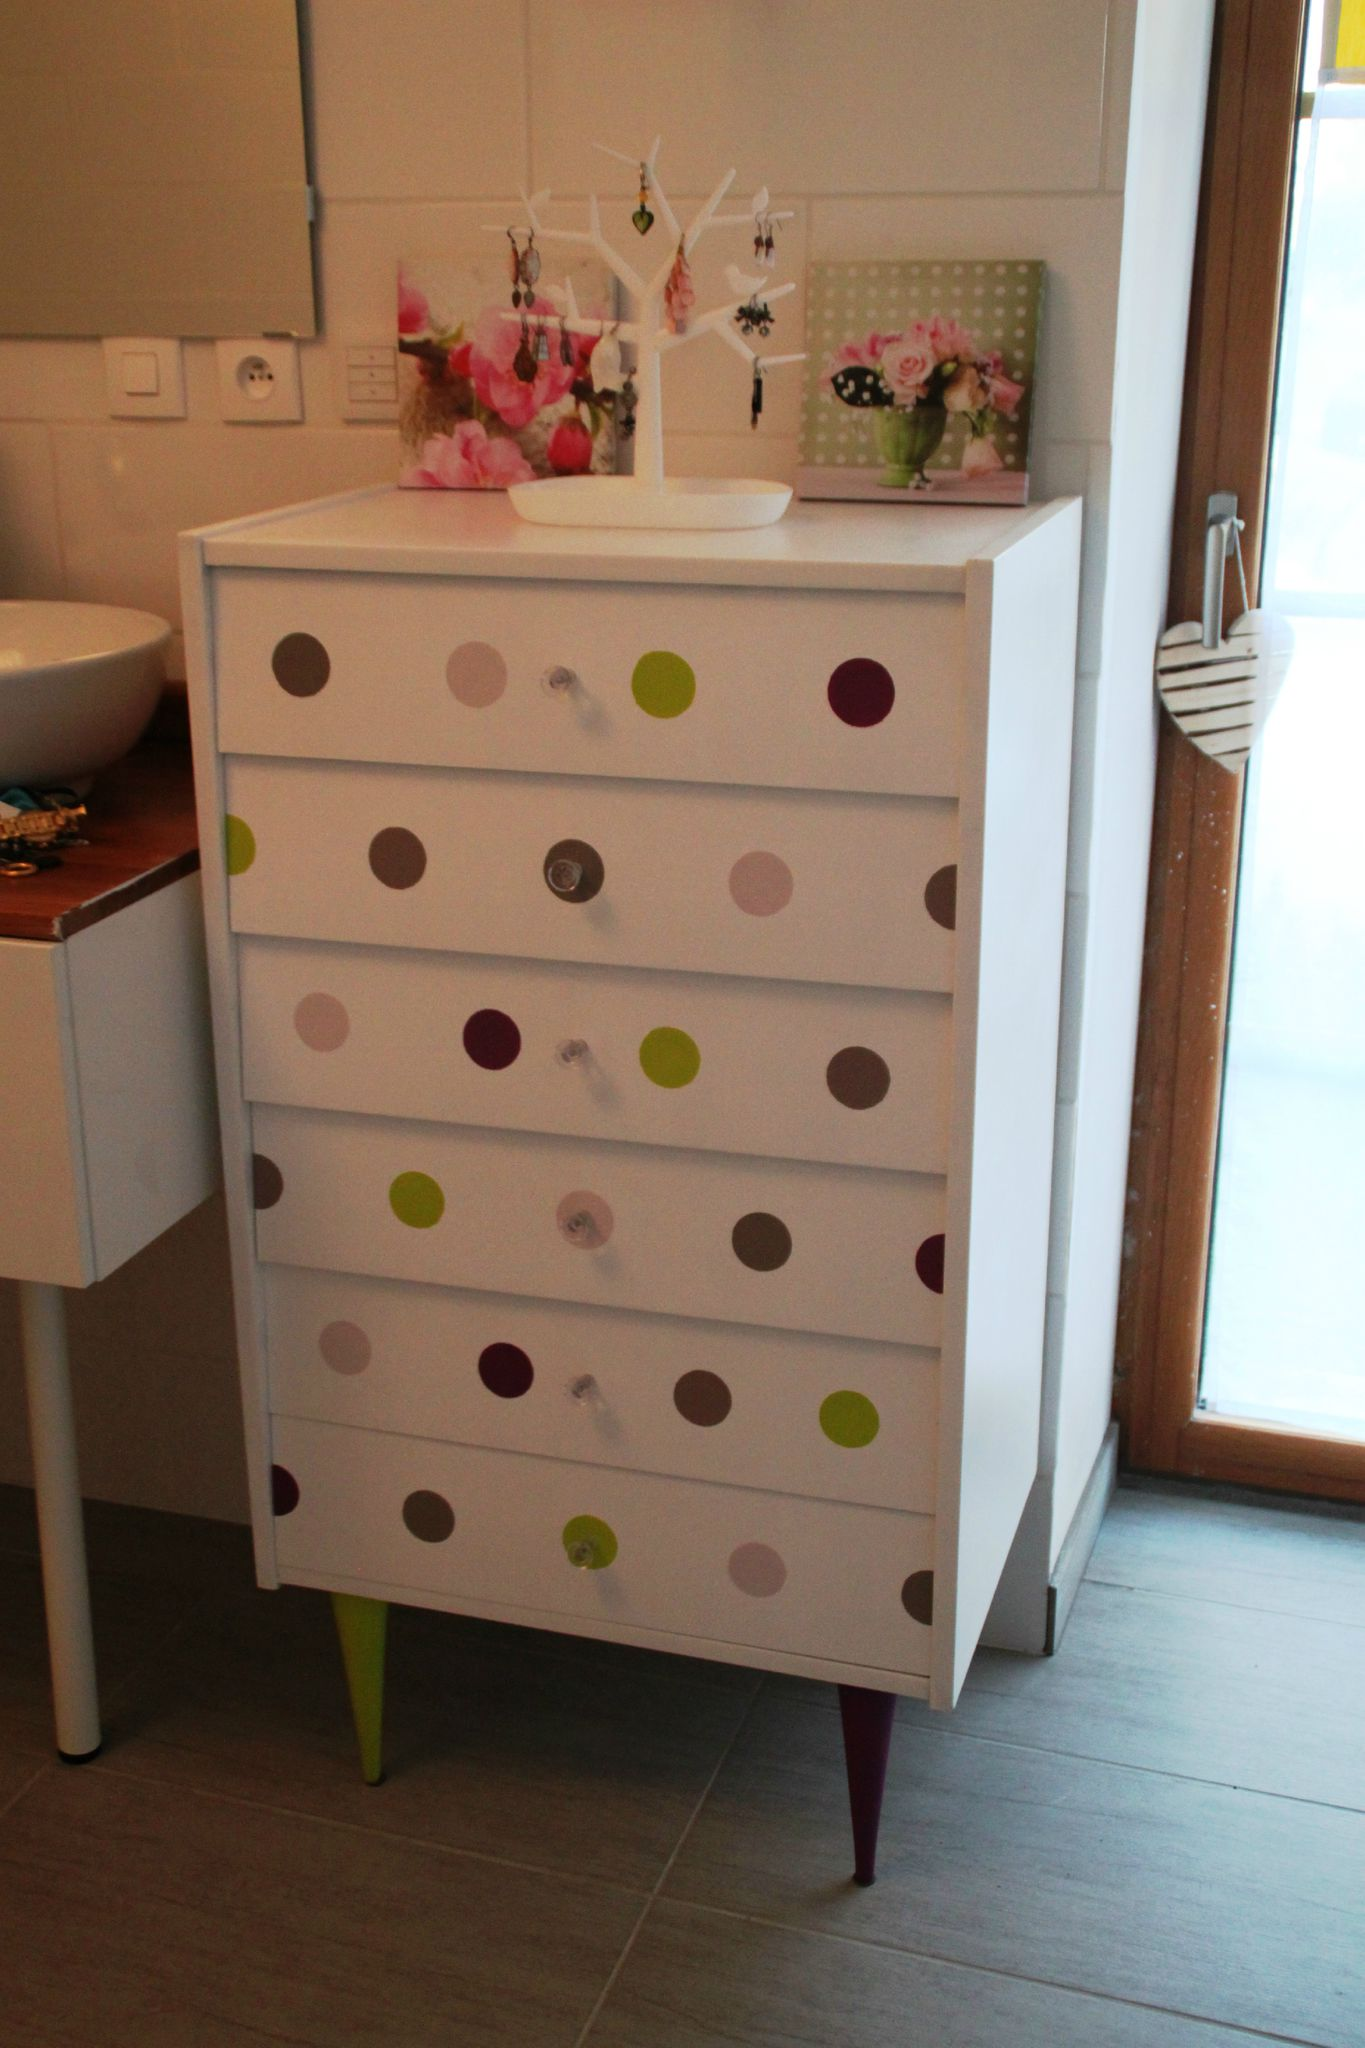 Cuisine Taupe Ikea Commode Pastel Dots - Diy Relooking Mobilier - Créer Ma Déco!